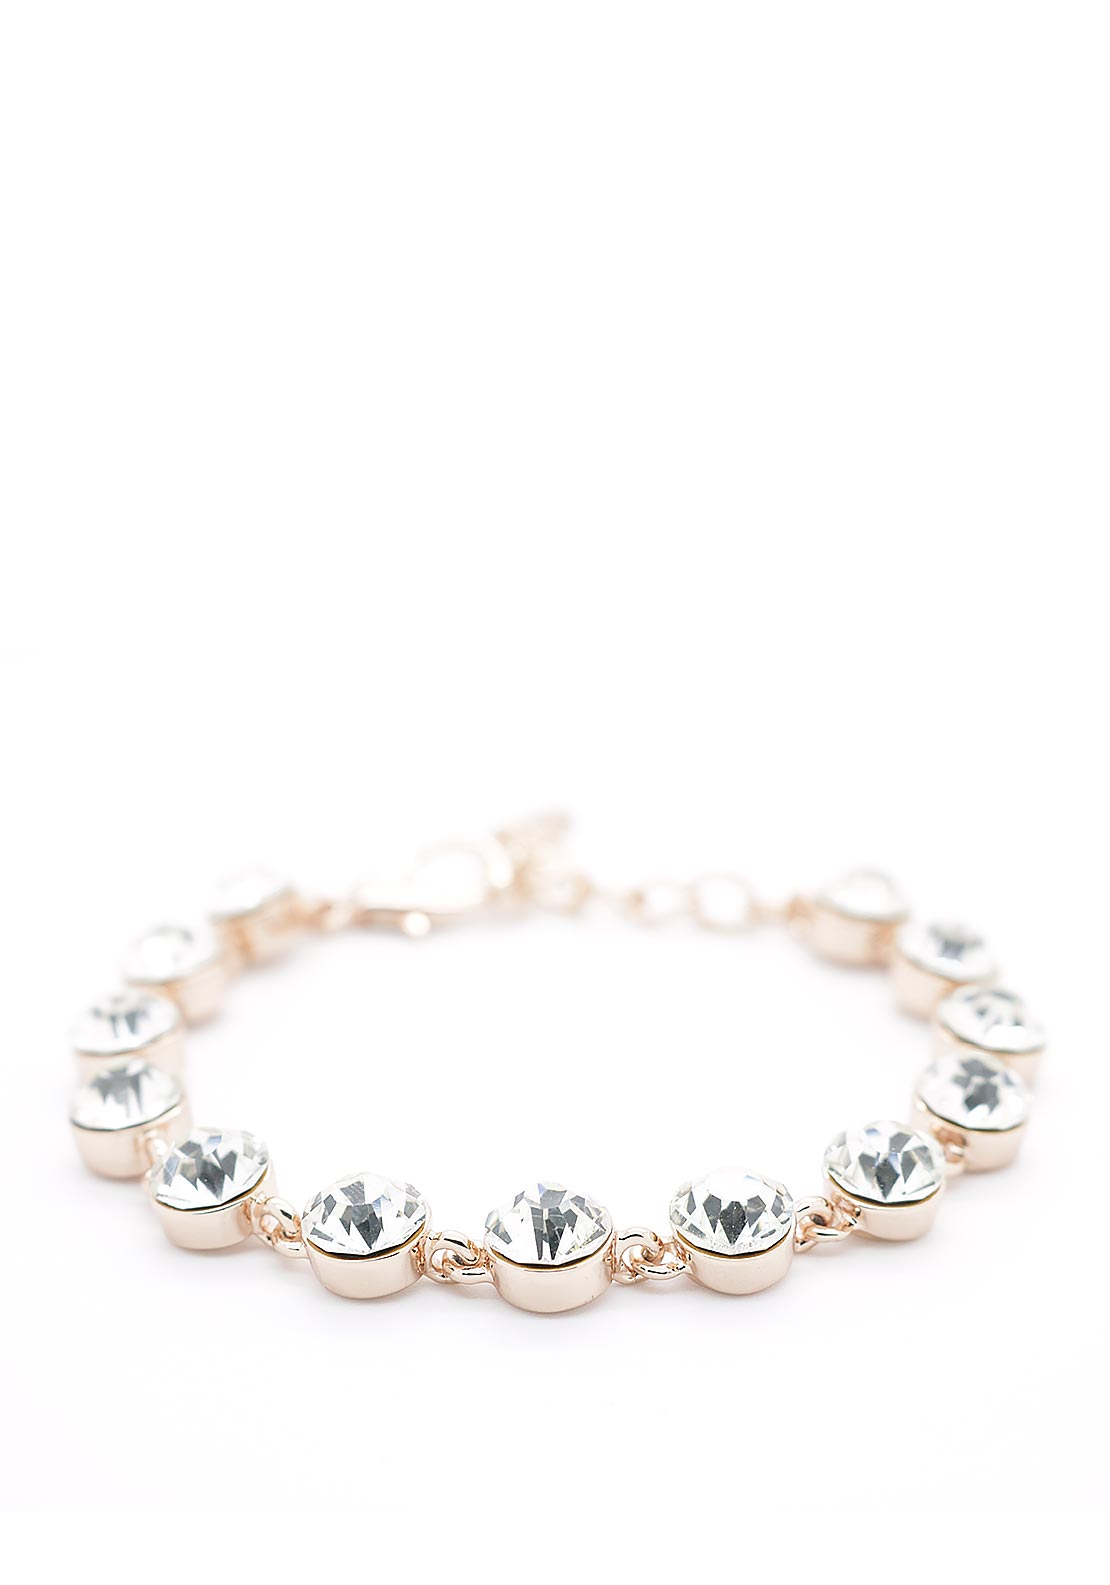 Absolute Crystal Bracelet, Rose Gold